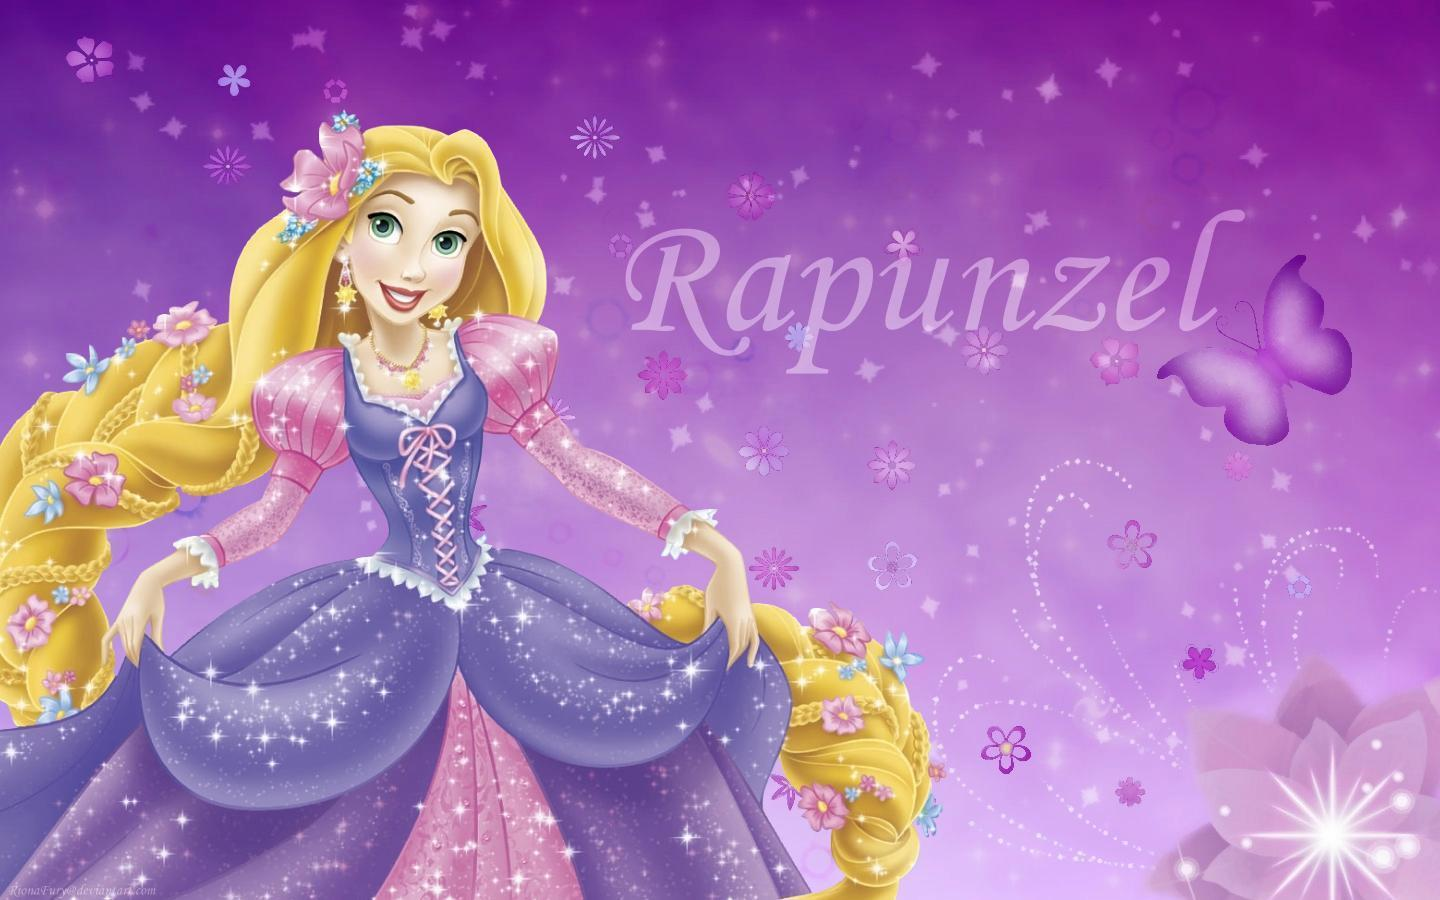 Disney Princess Rapunzel - Tangled Wallpaper (23744594) - Fanpop